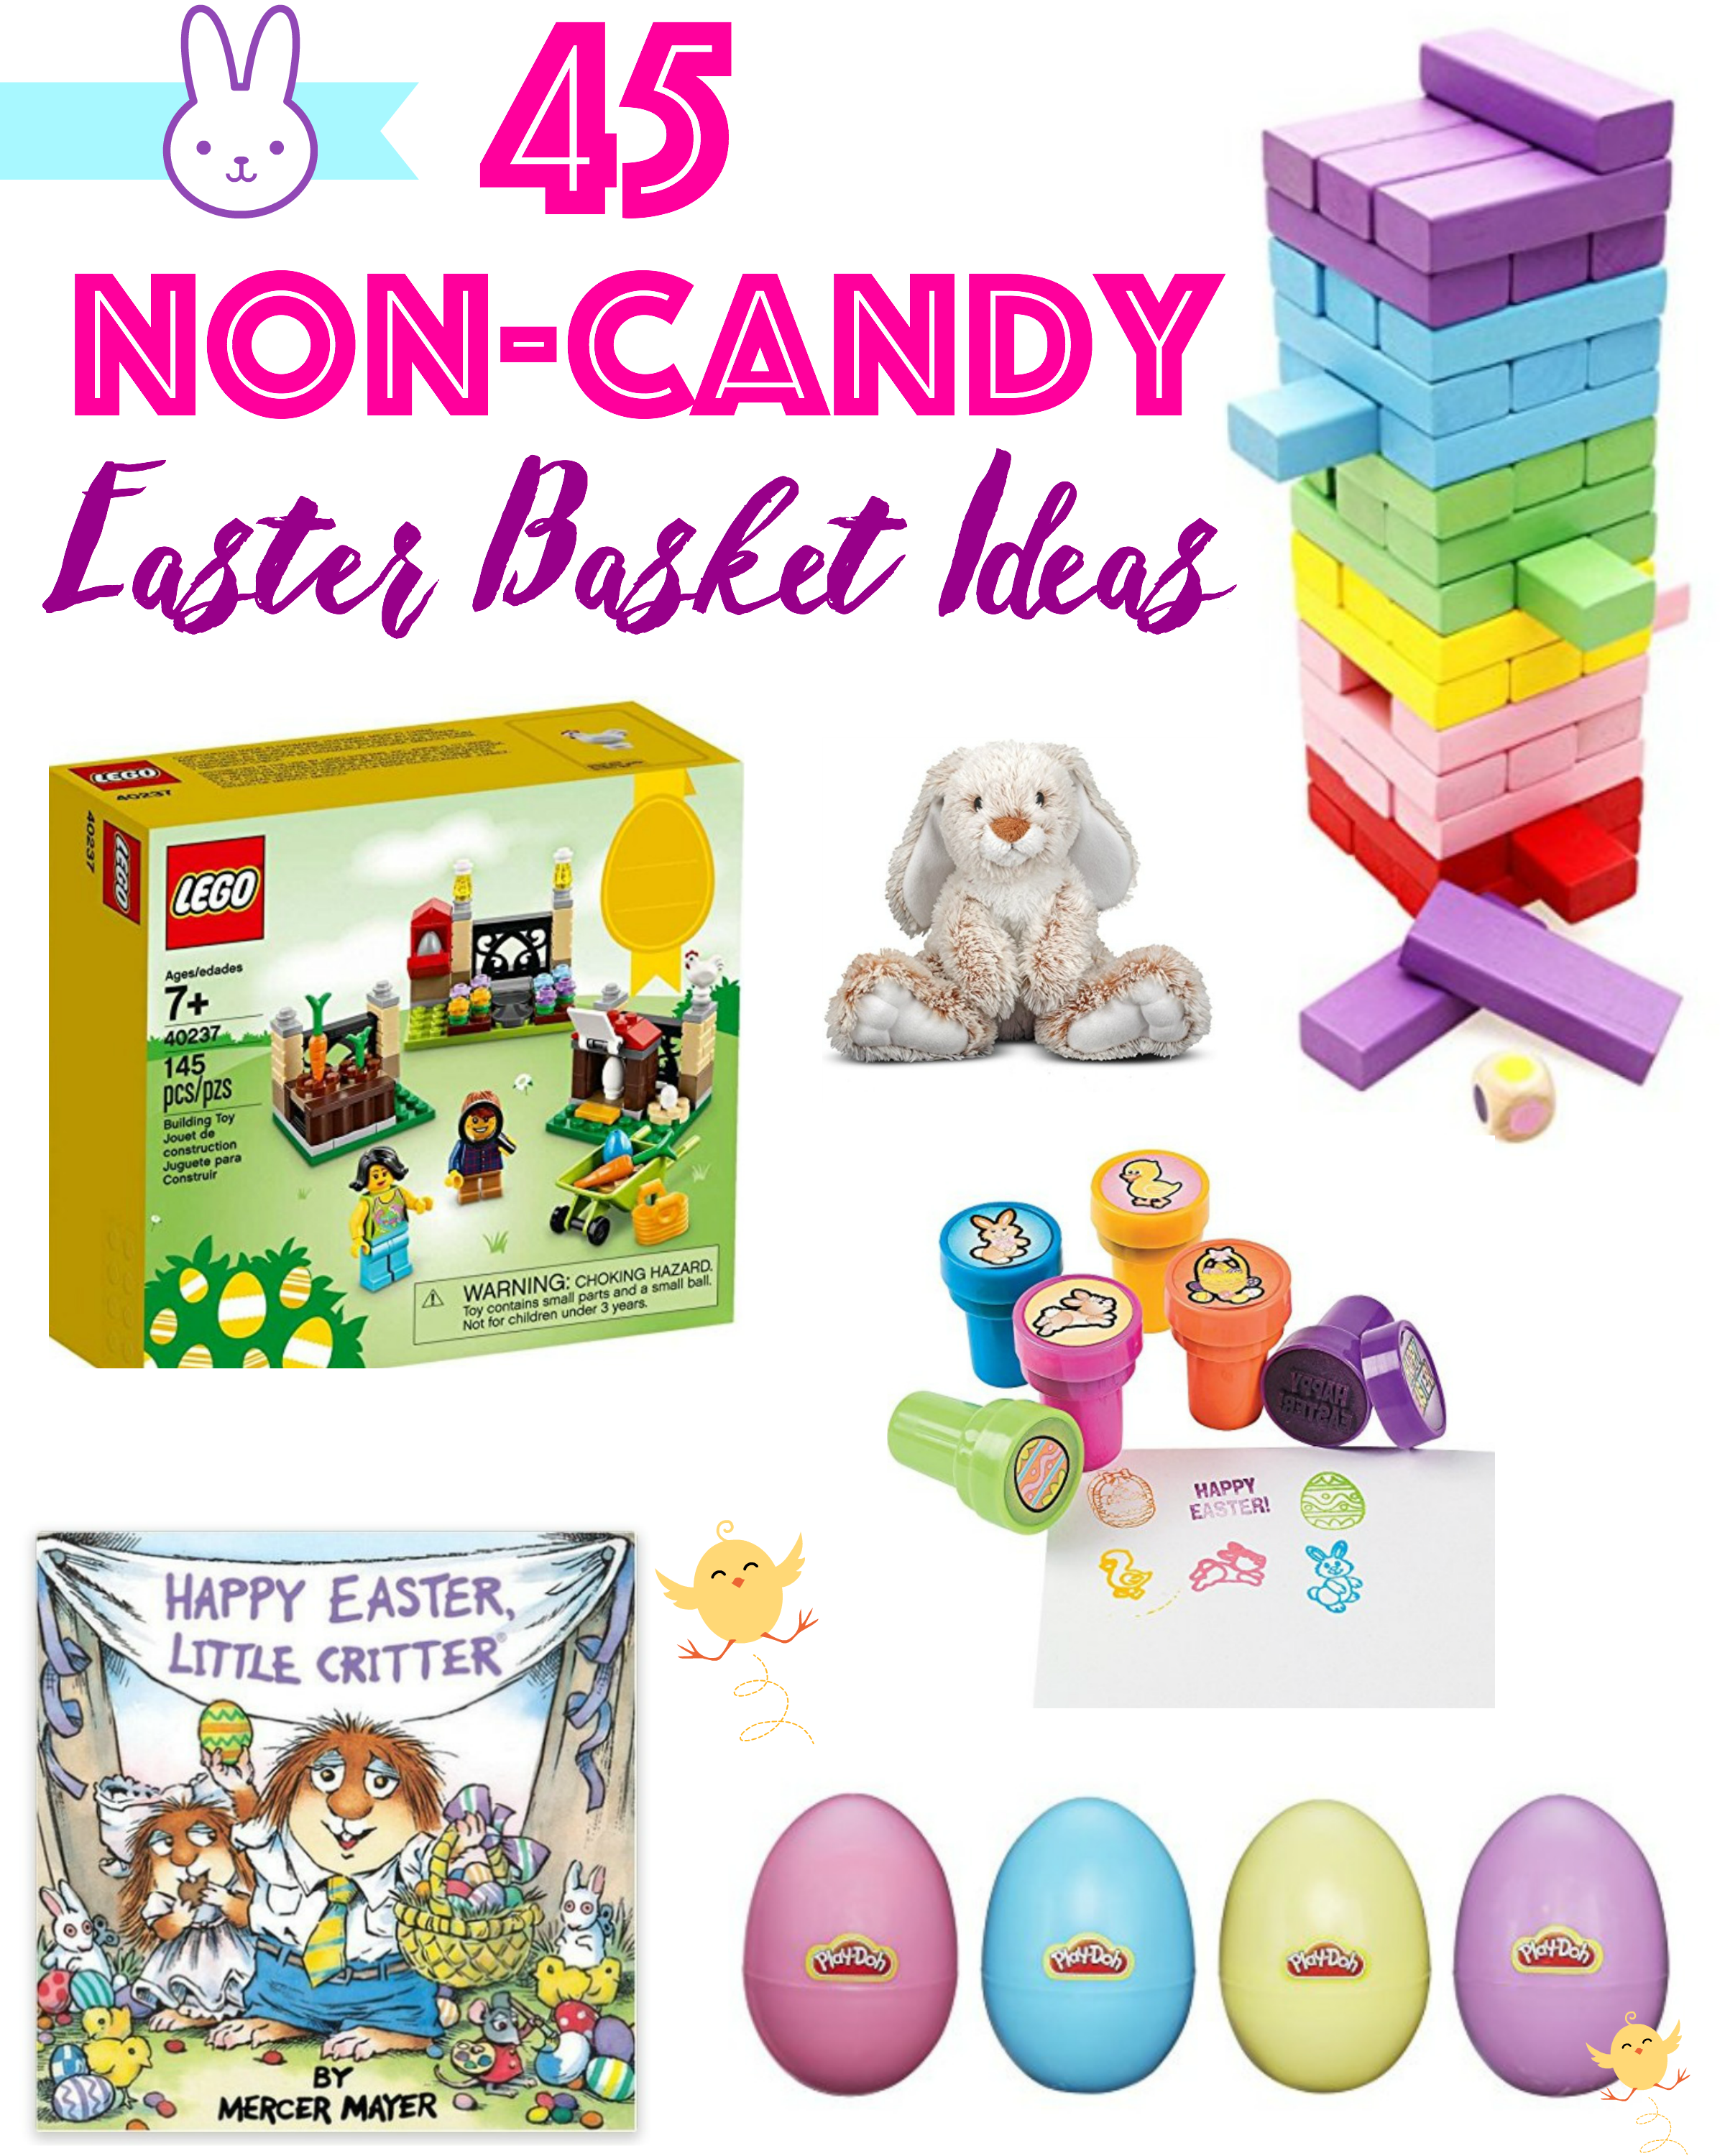 Skip the candy this year and try these non-candy Easter basket ideas instead.